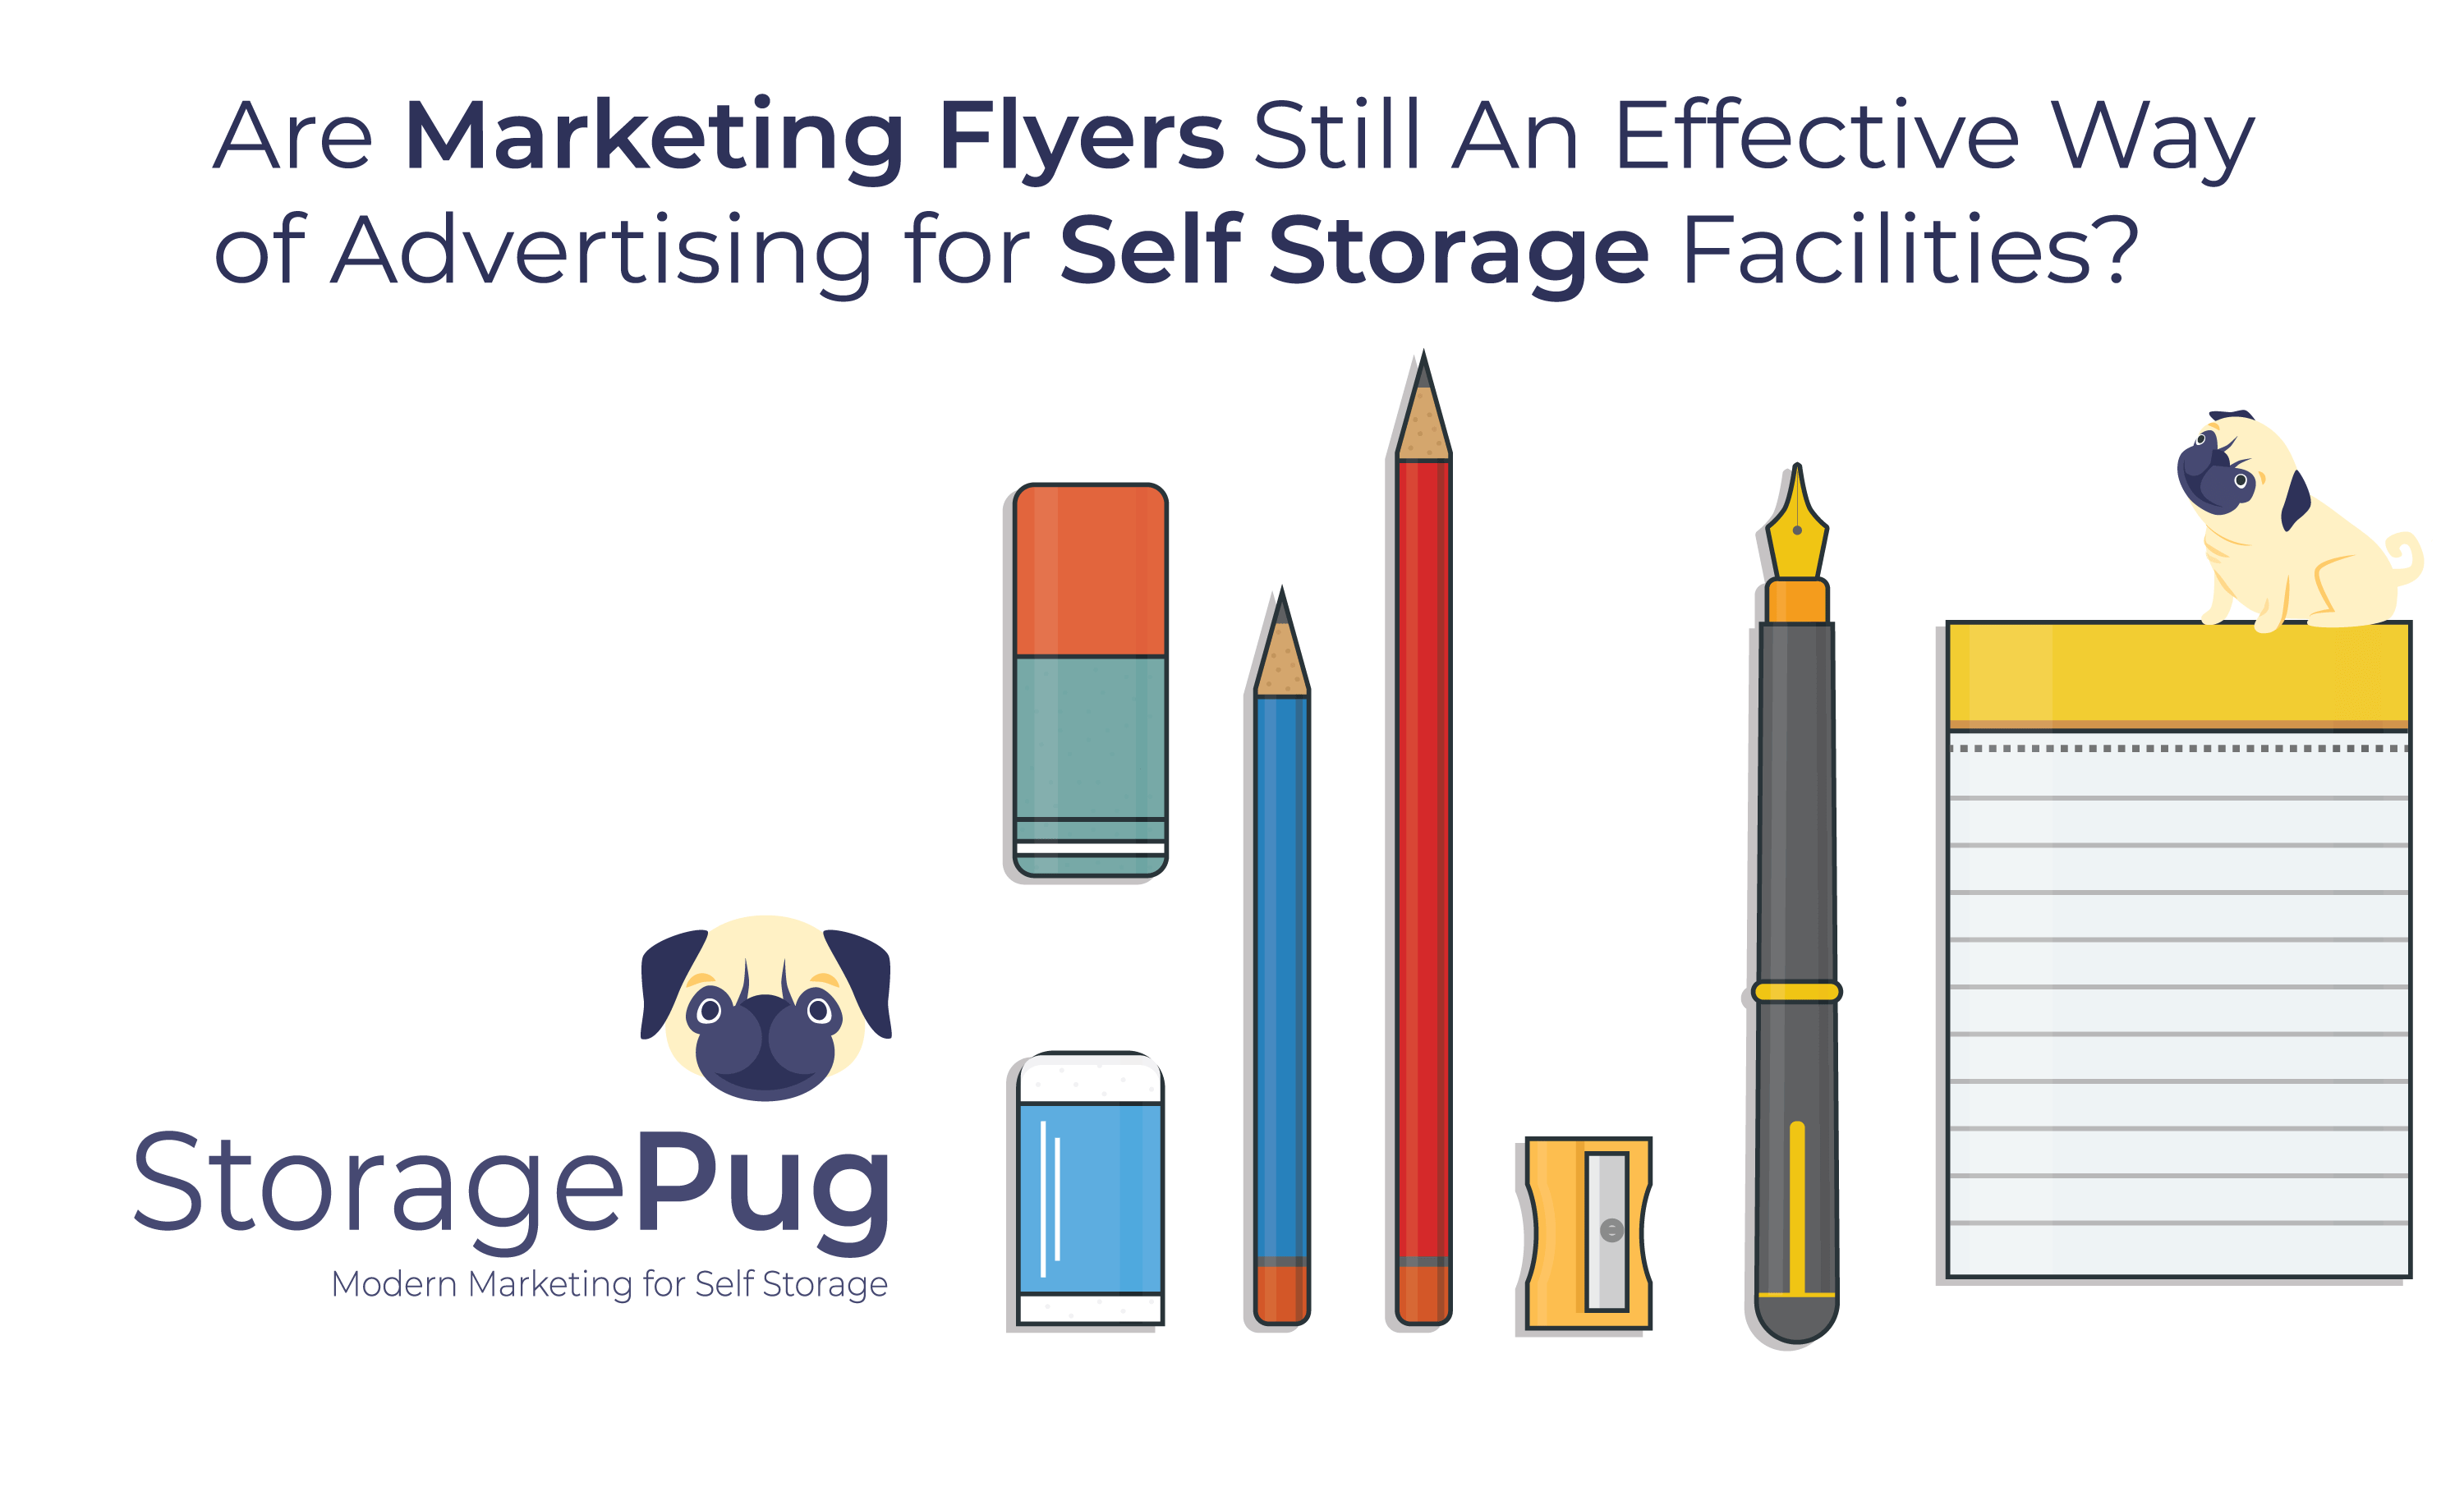 In our digital age, it is easy to believe that flyers are outmoded forms of self storage marketing. Is that the bottom line or can they still be effective-